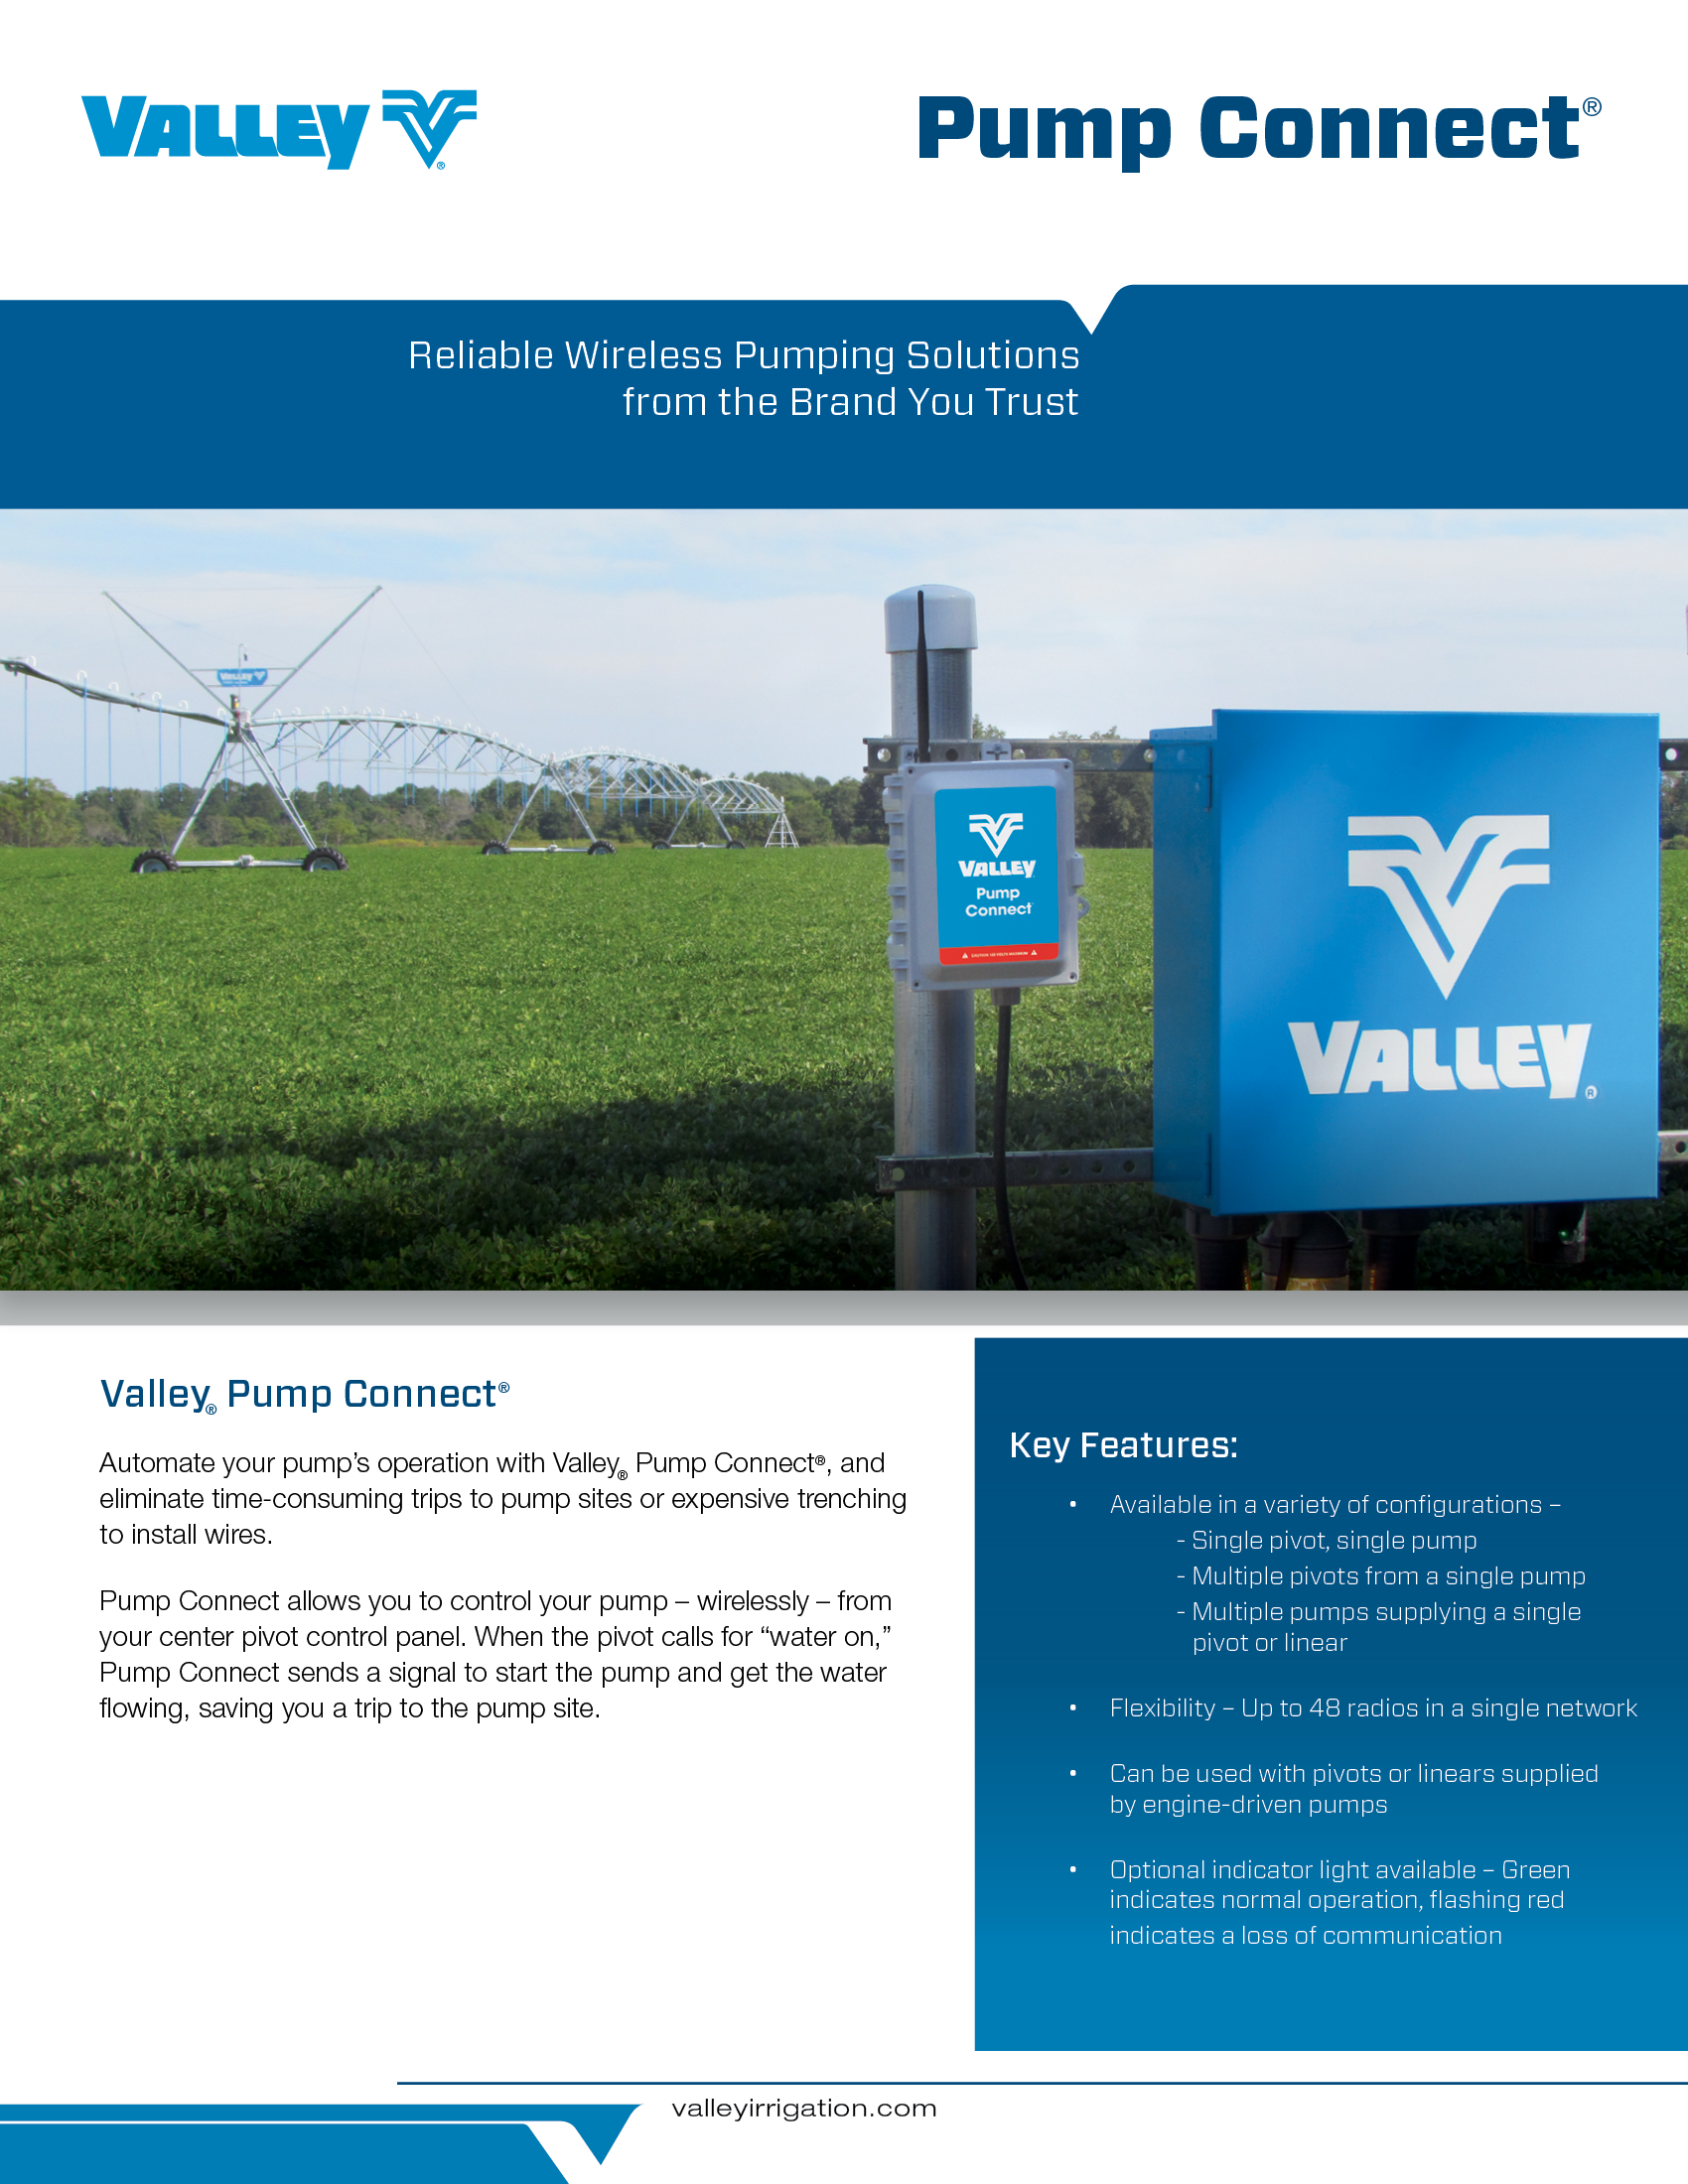 valley pump connect brochure cover